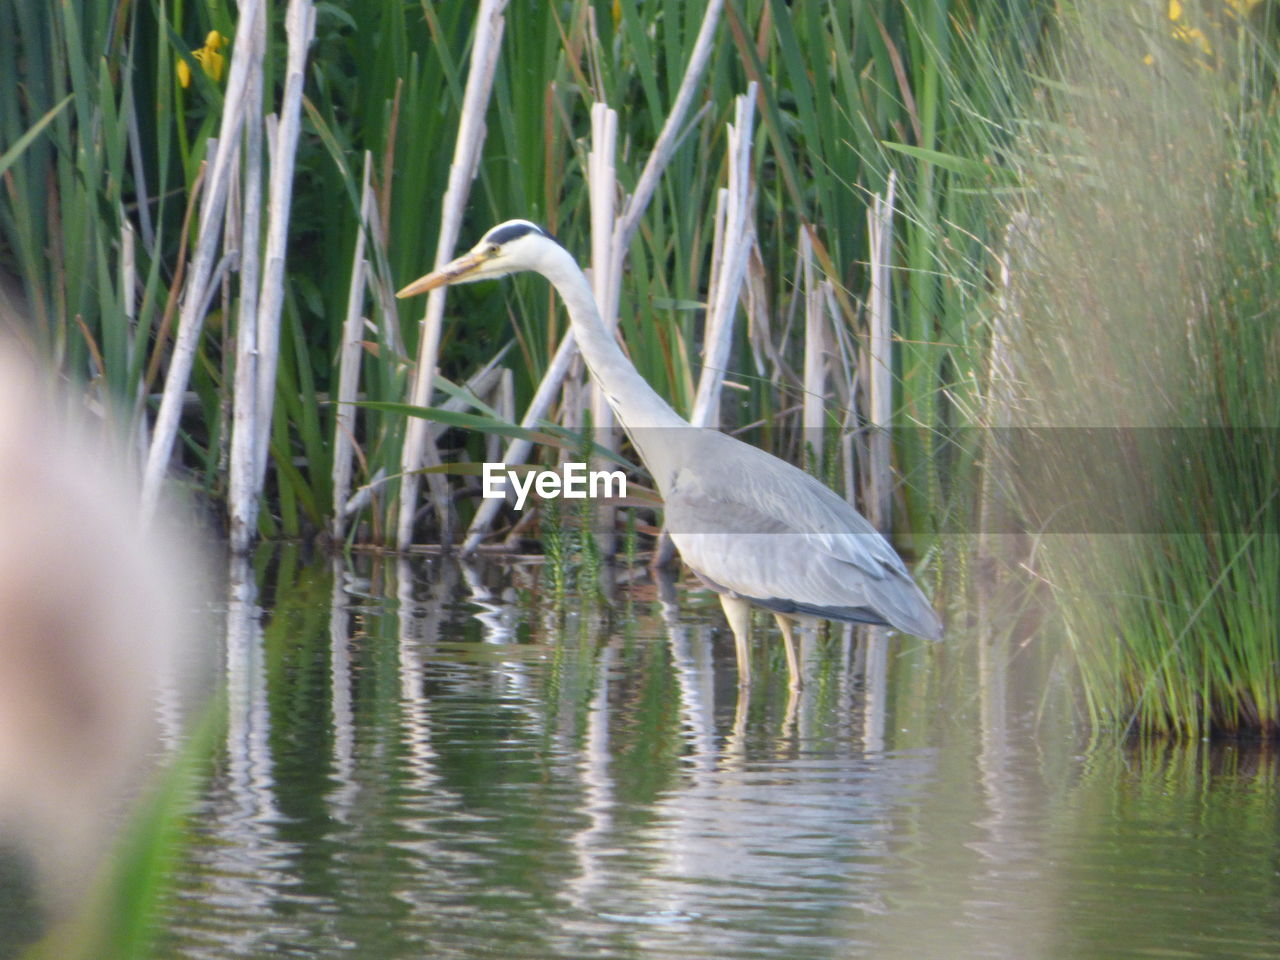 heron, bird, animals in the wild, water, nature, animal themes, great egret, gray heron, one animal, great blue heron, animal wildlife, egret, reflection, day, lake, beauty in nature, plant, outdoors, no people, grass, crane - bird, perching